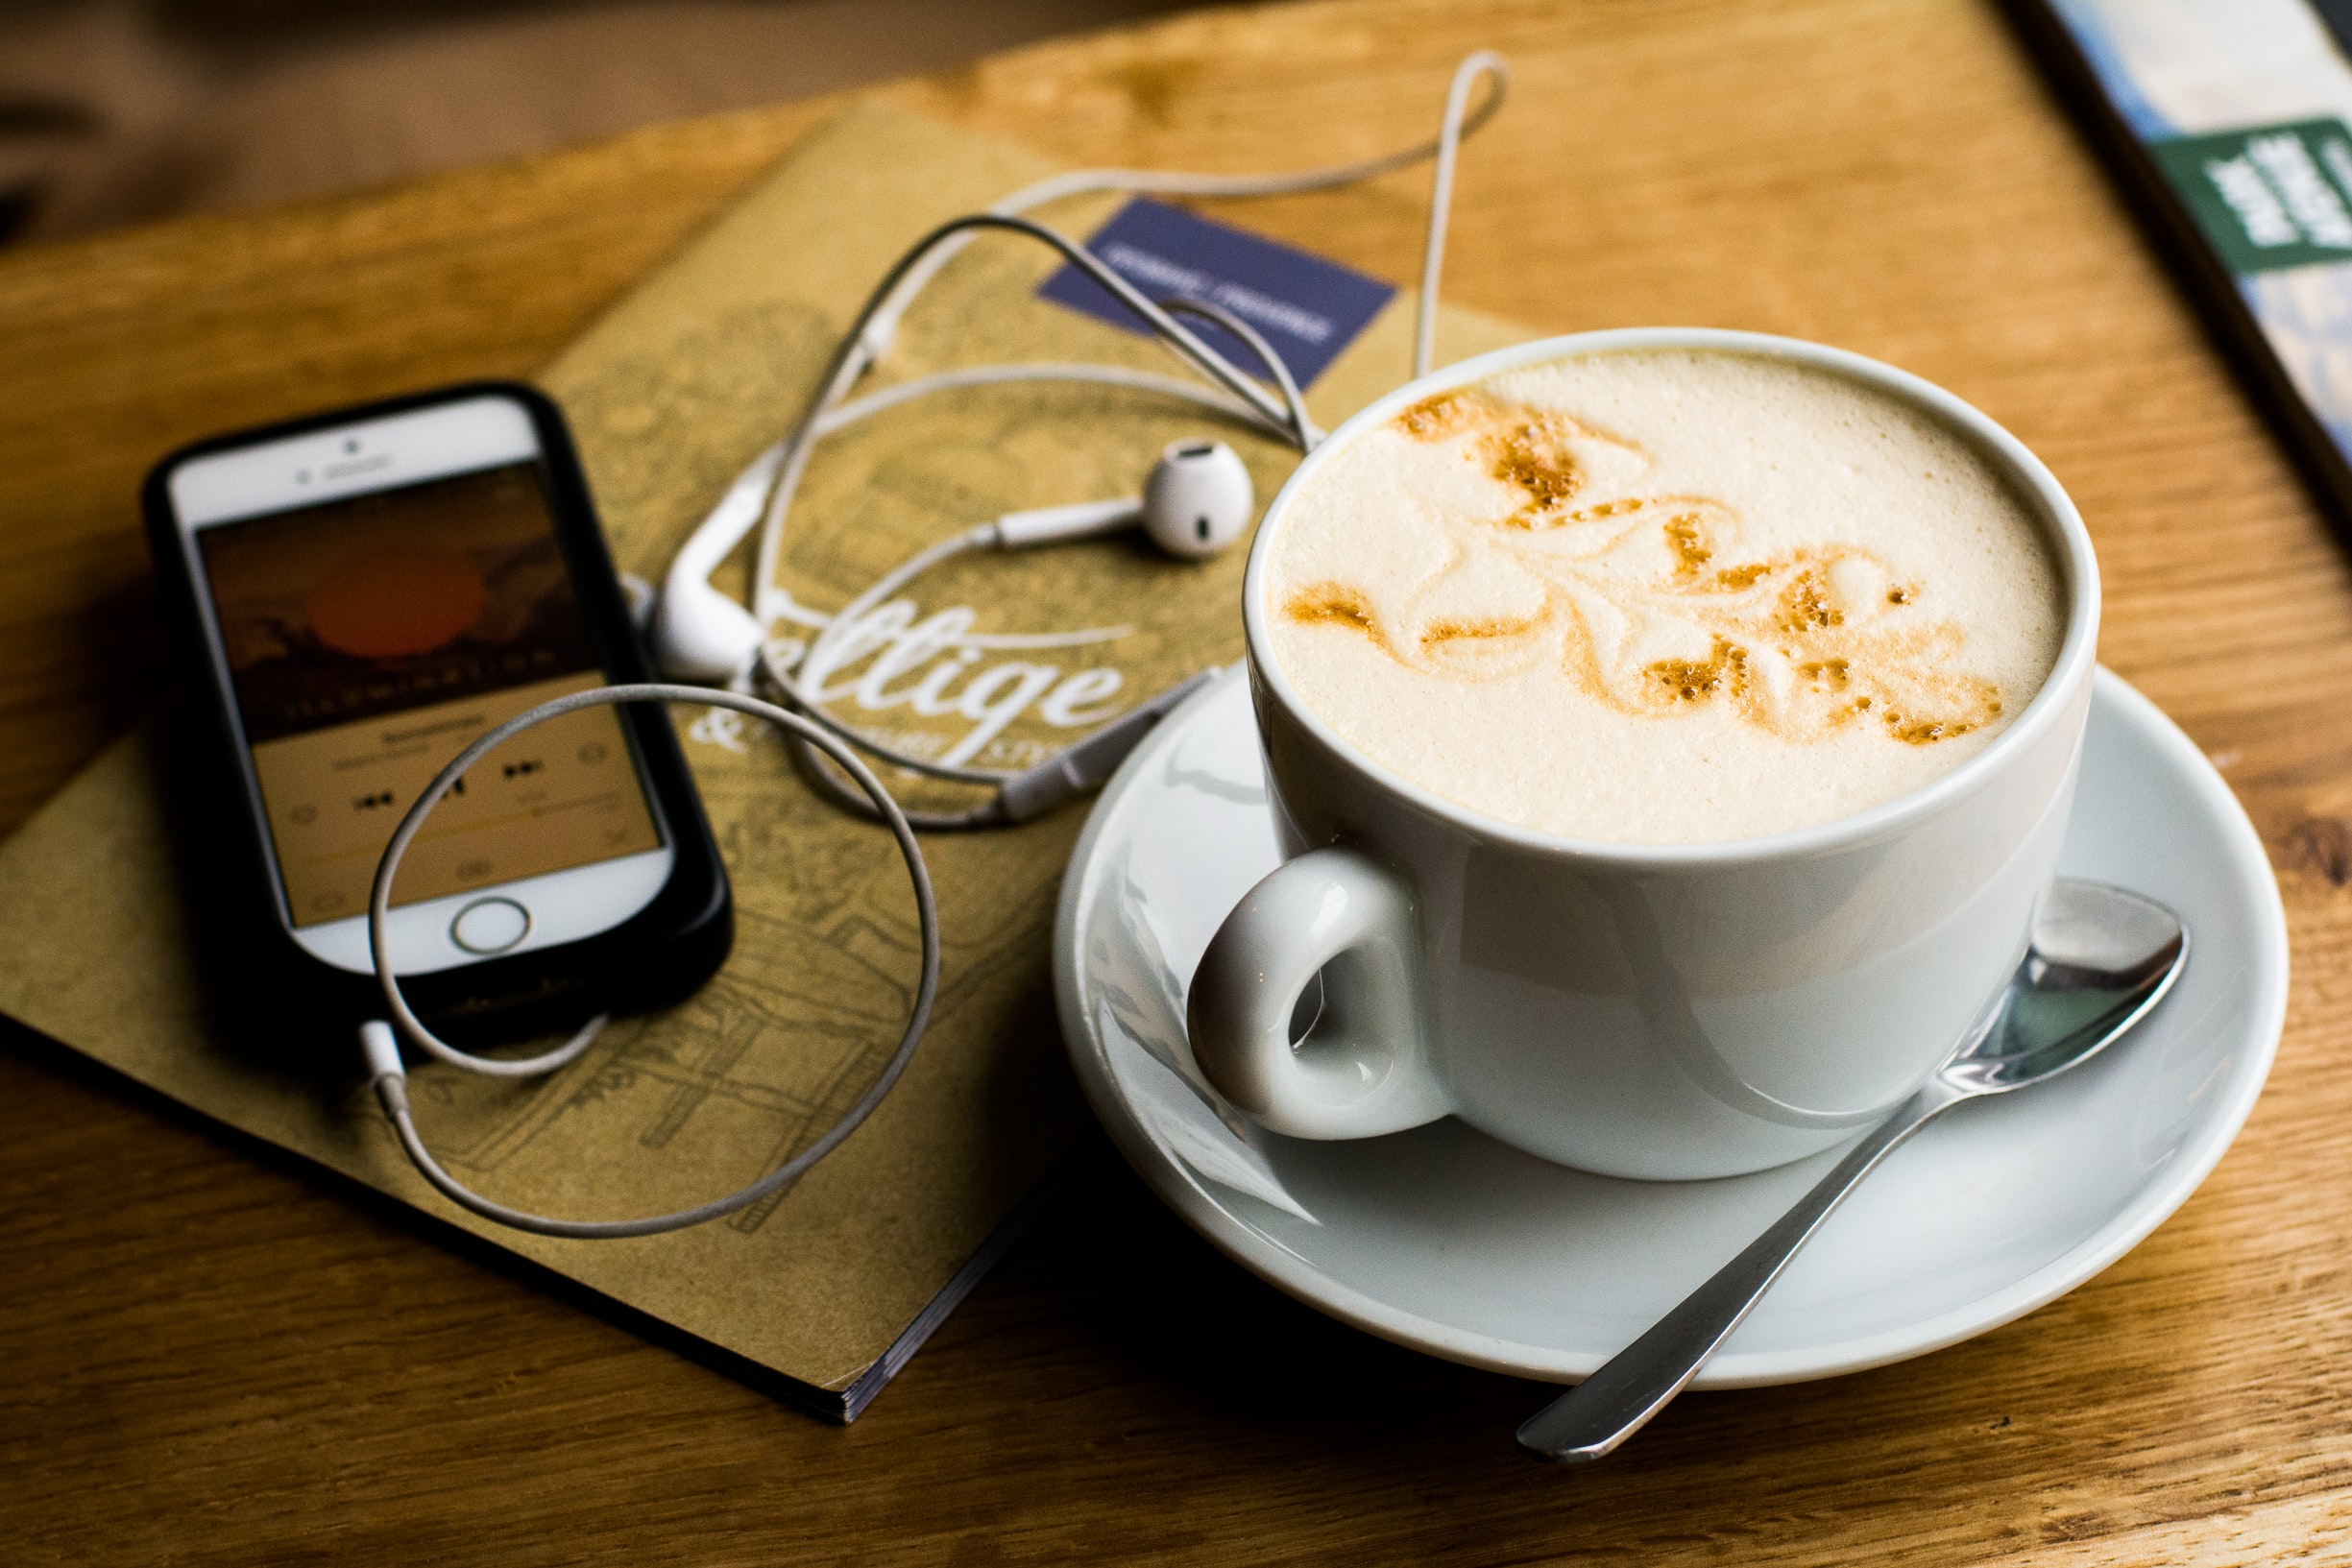 A phone playing a customer experience podcast sits on a table next to a cup of coffee